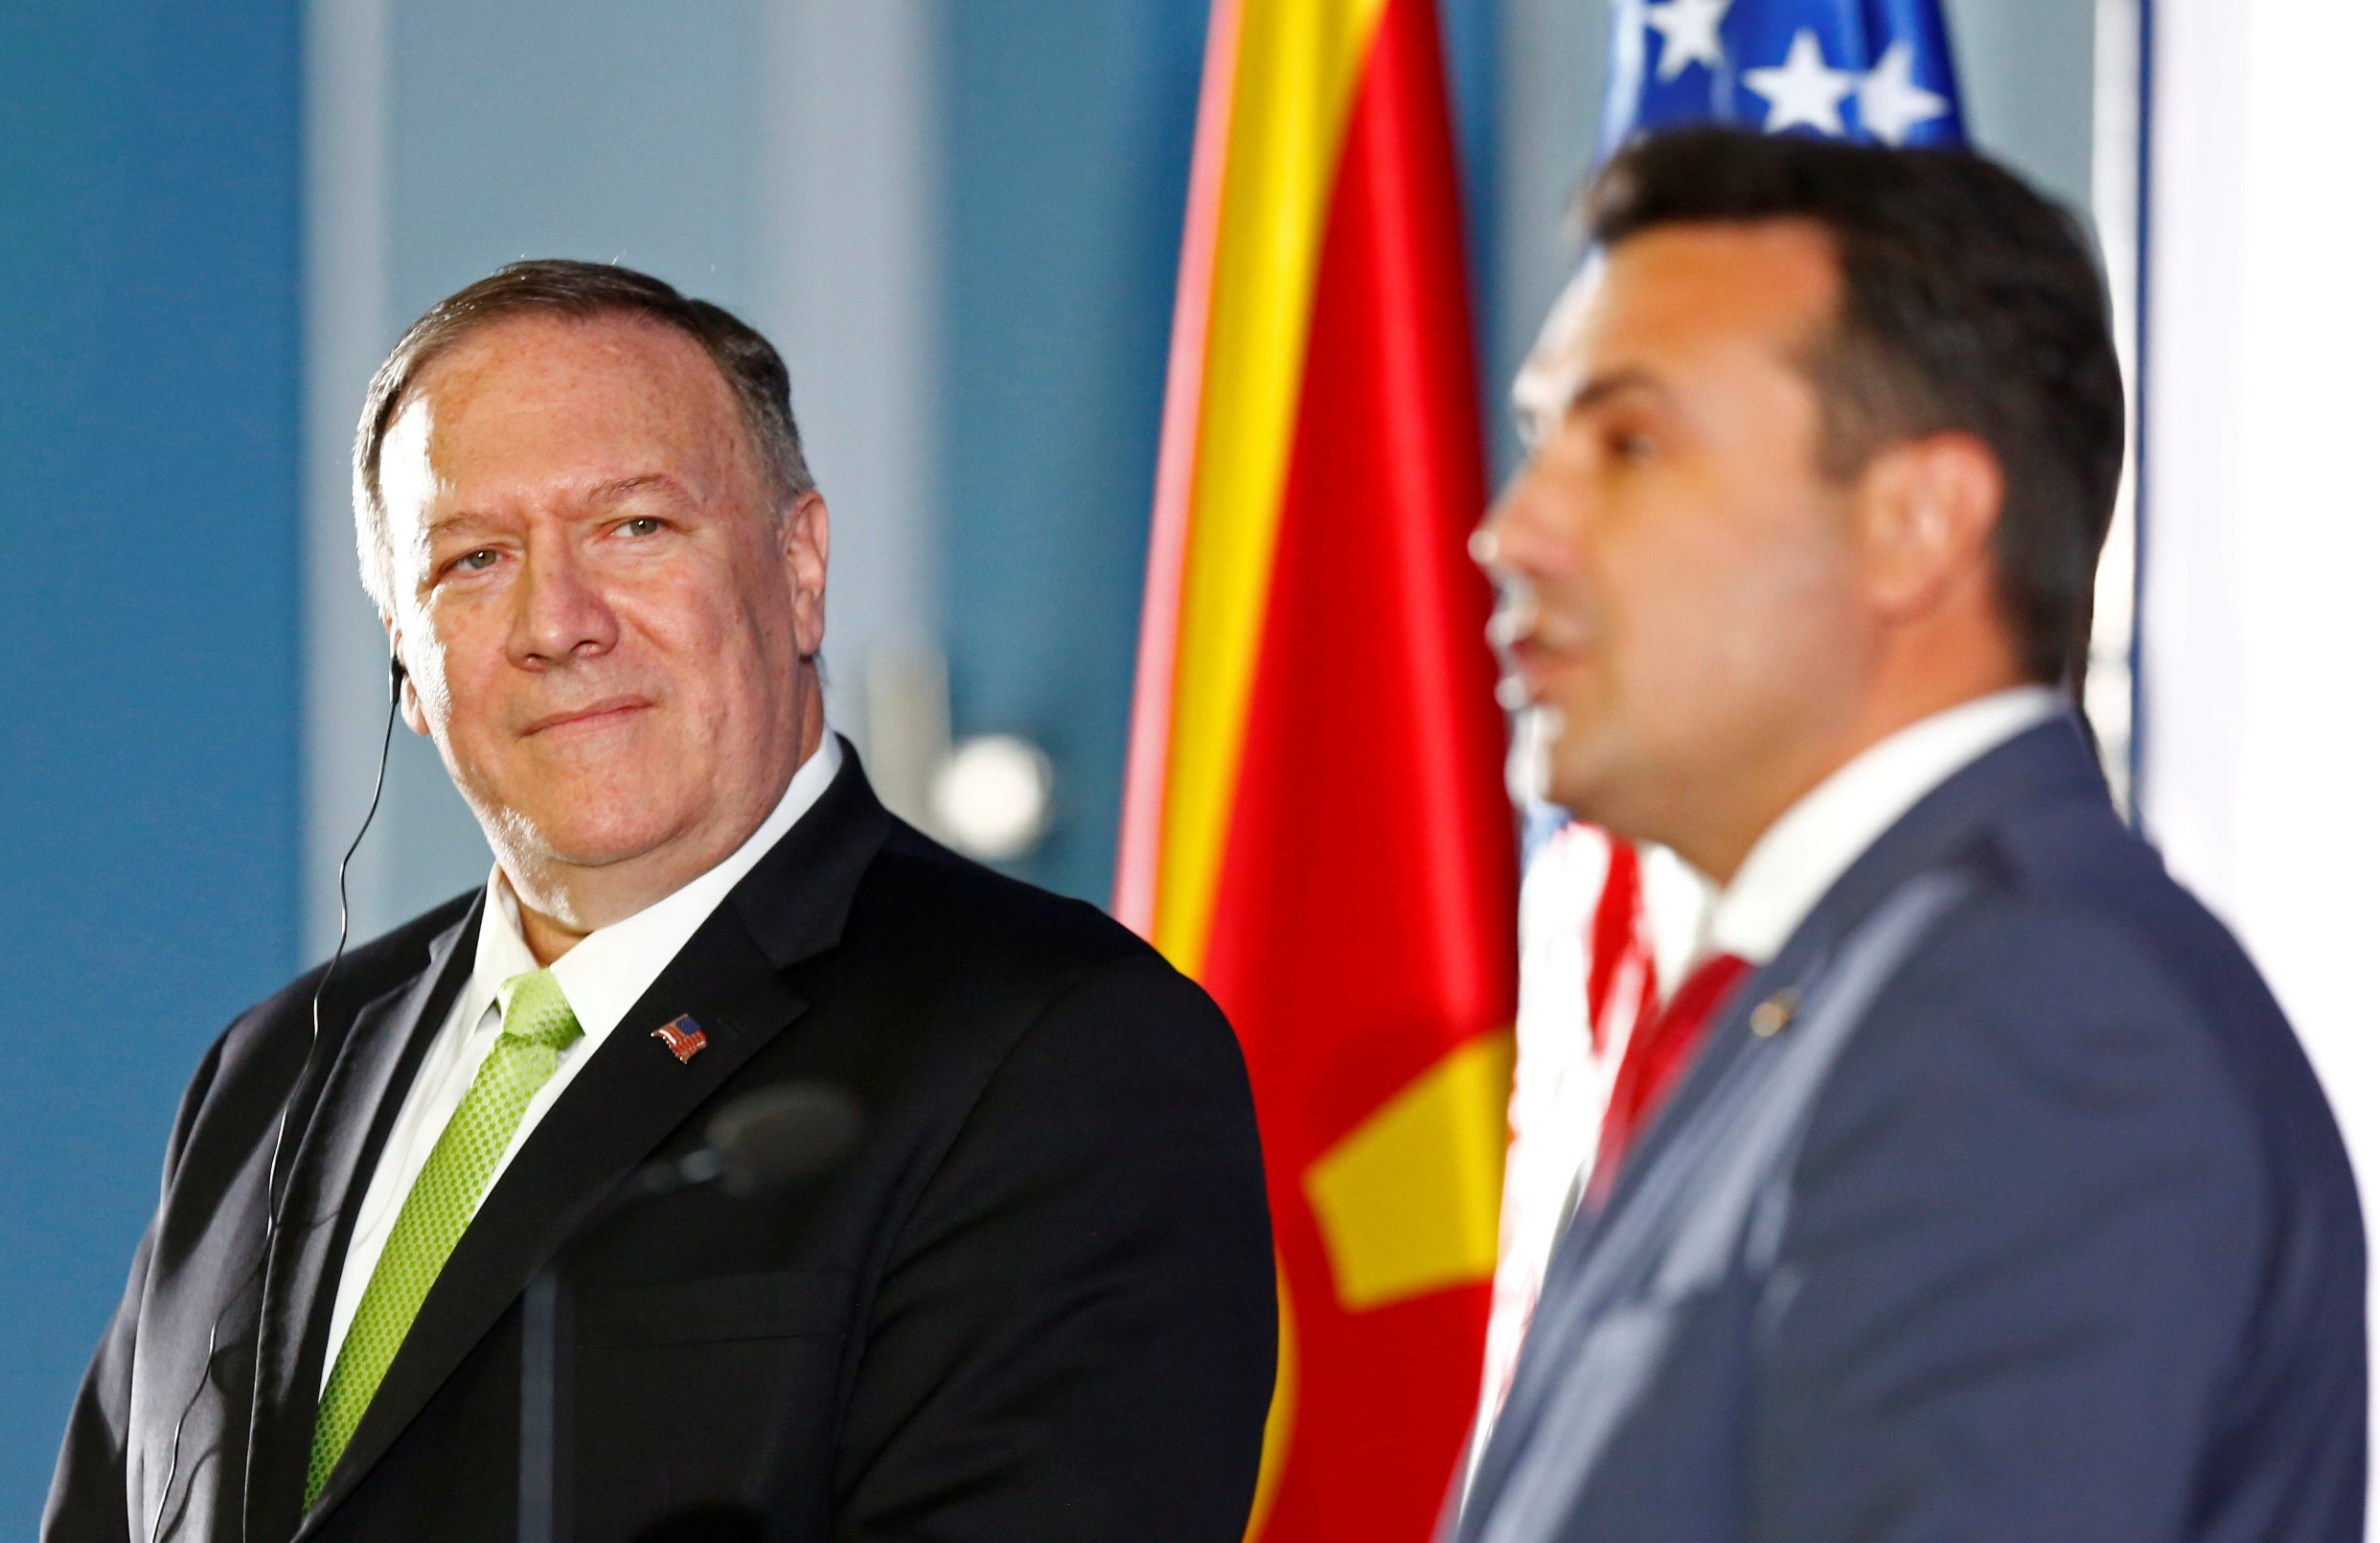 2019-10-04T140353Z_20768212_RC184AB4DA40_RTRMADP_3_USA-BALKANS-POMPEO-NORTH-MACEDONIA